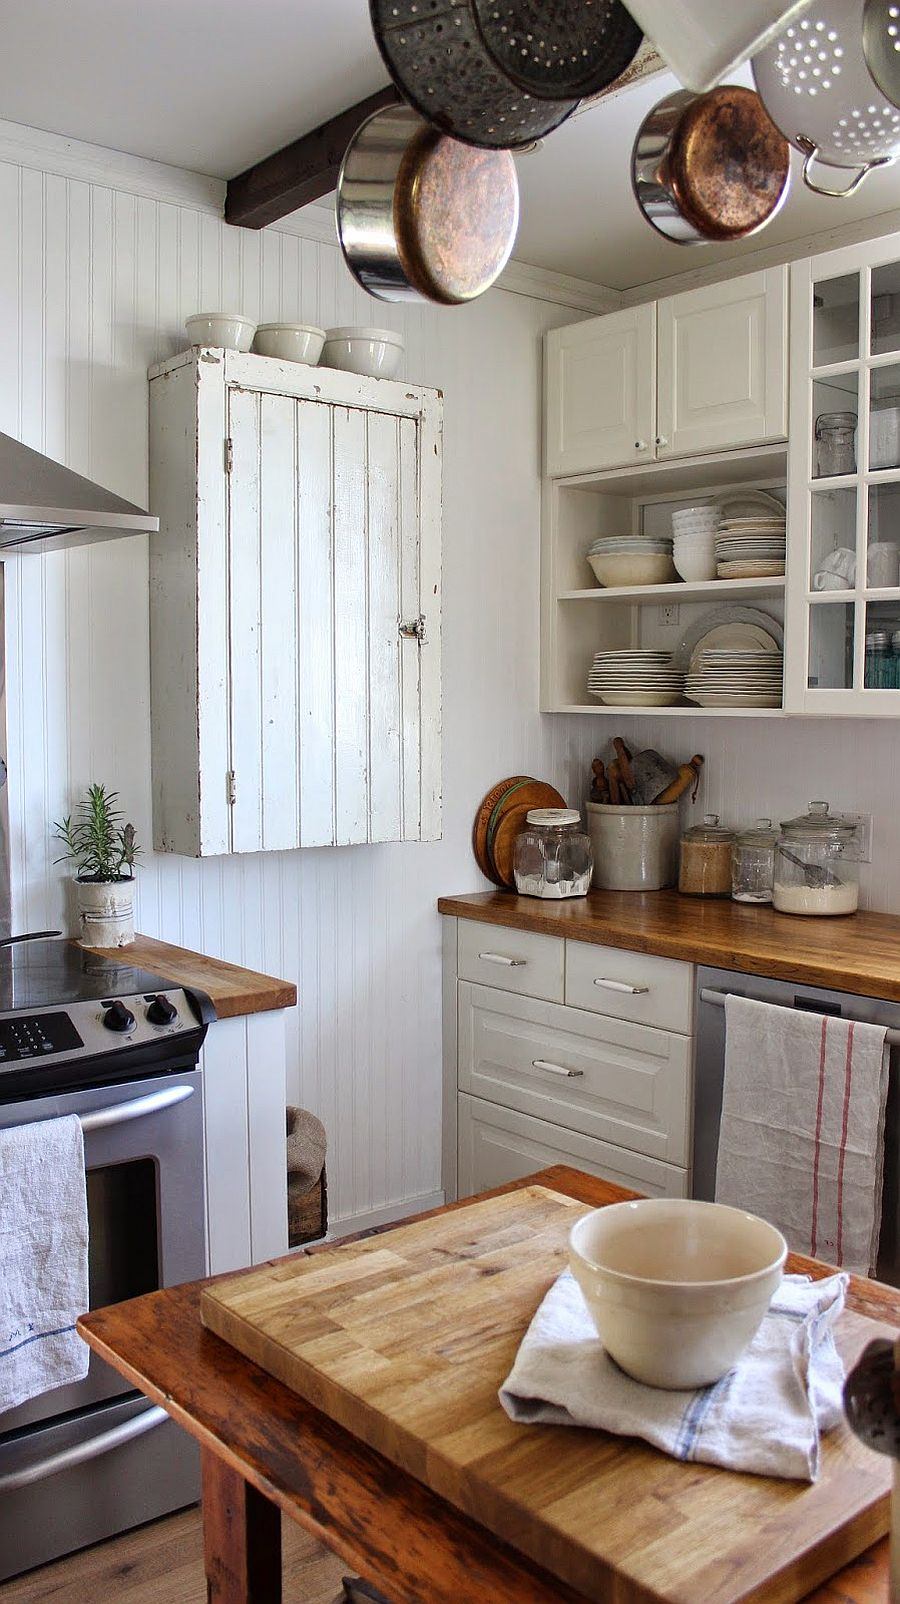 Simple and elegant way to utilize the corner space in kitchen